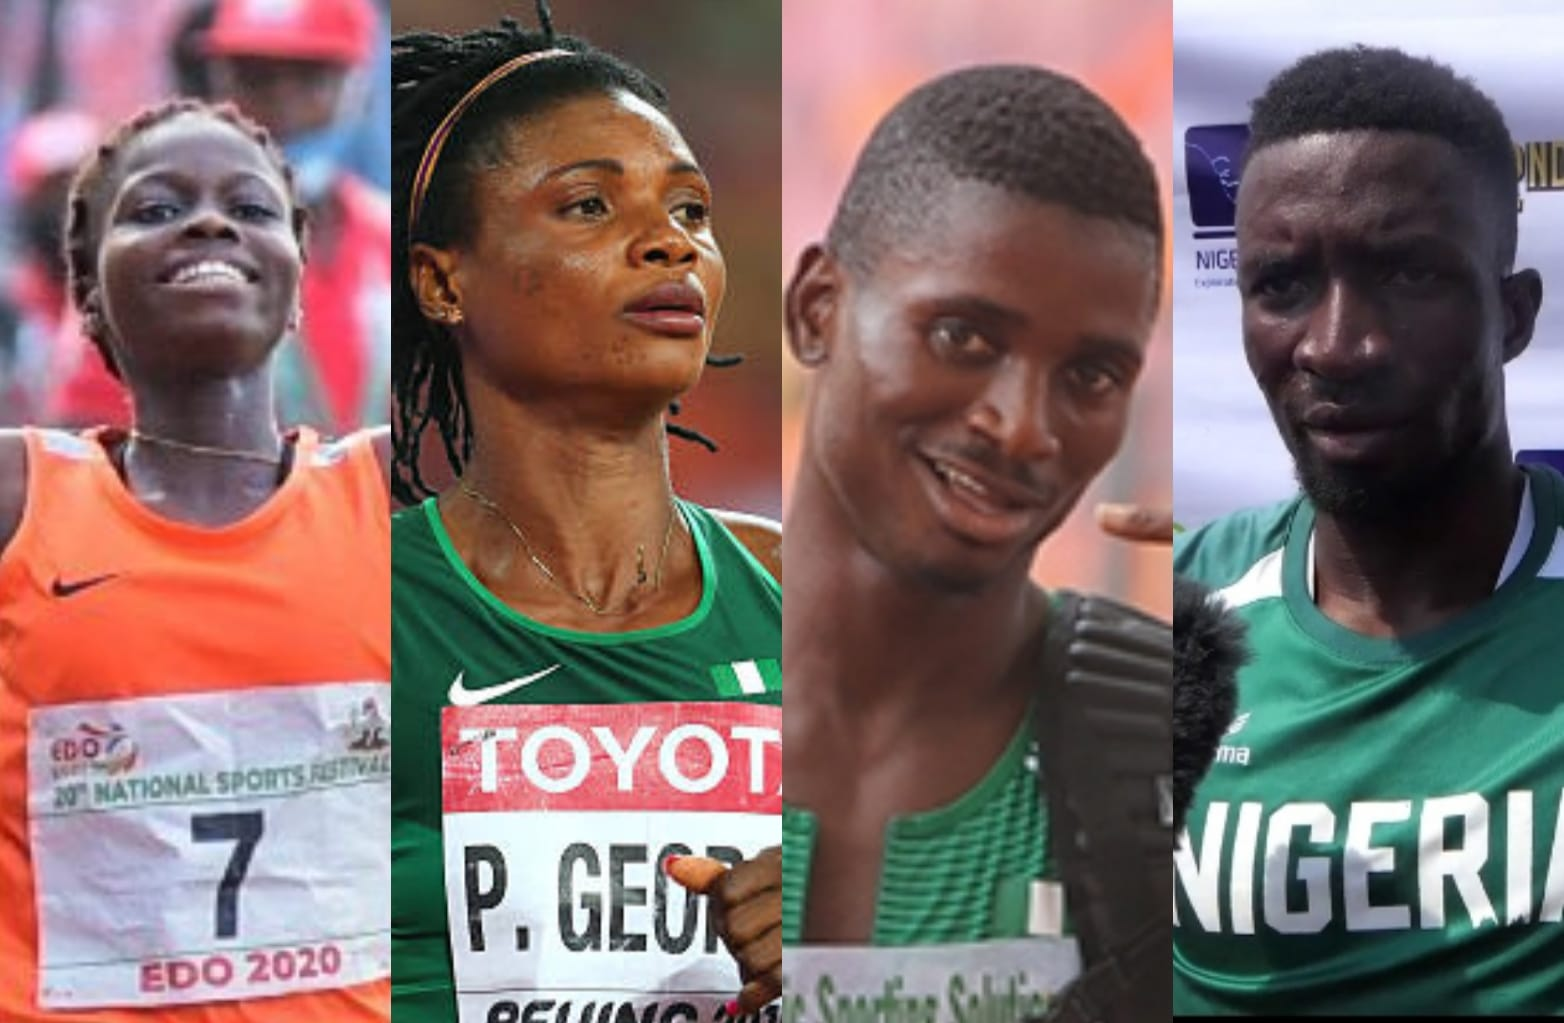 Tokyo Olympics Relay Qualication: Nigeria Move Within Five Places Of Qualifying